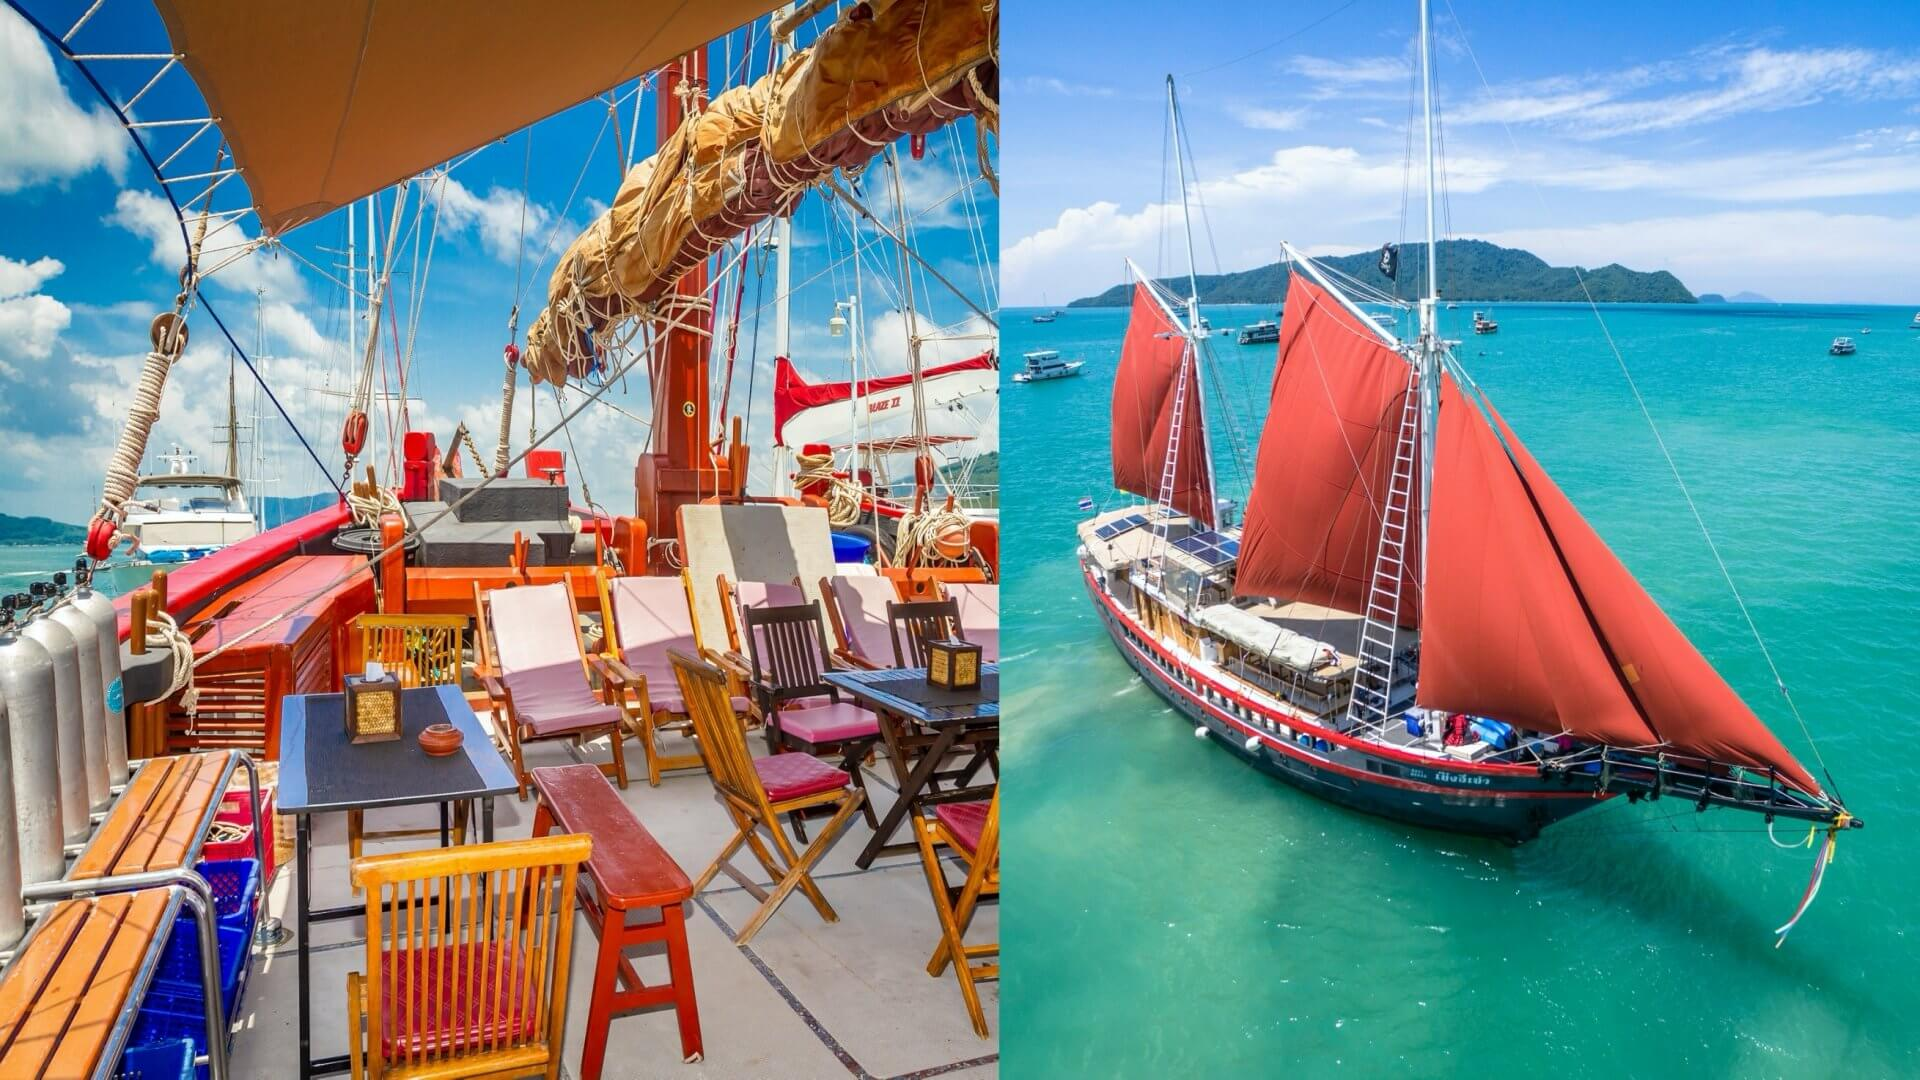 Save 25% On All Junk & Phinisi Trips 2020